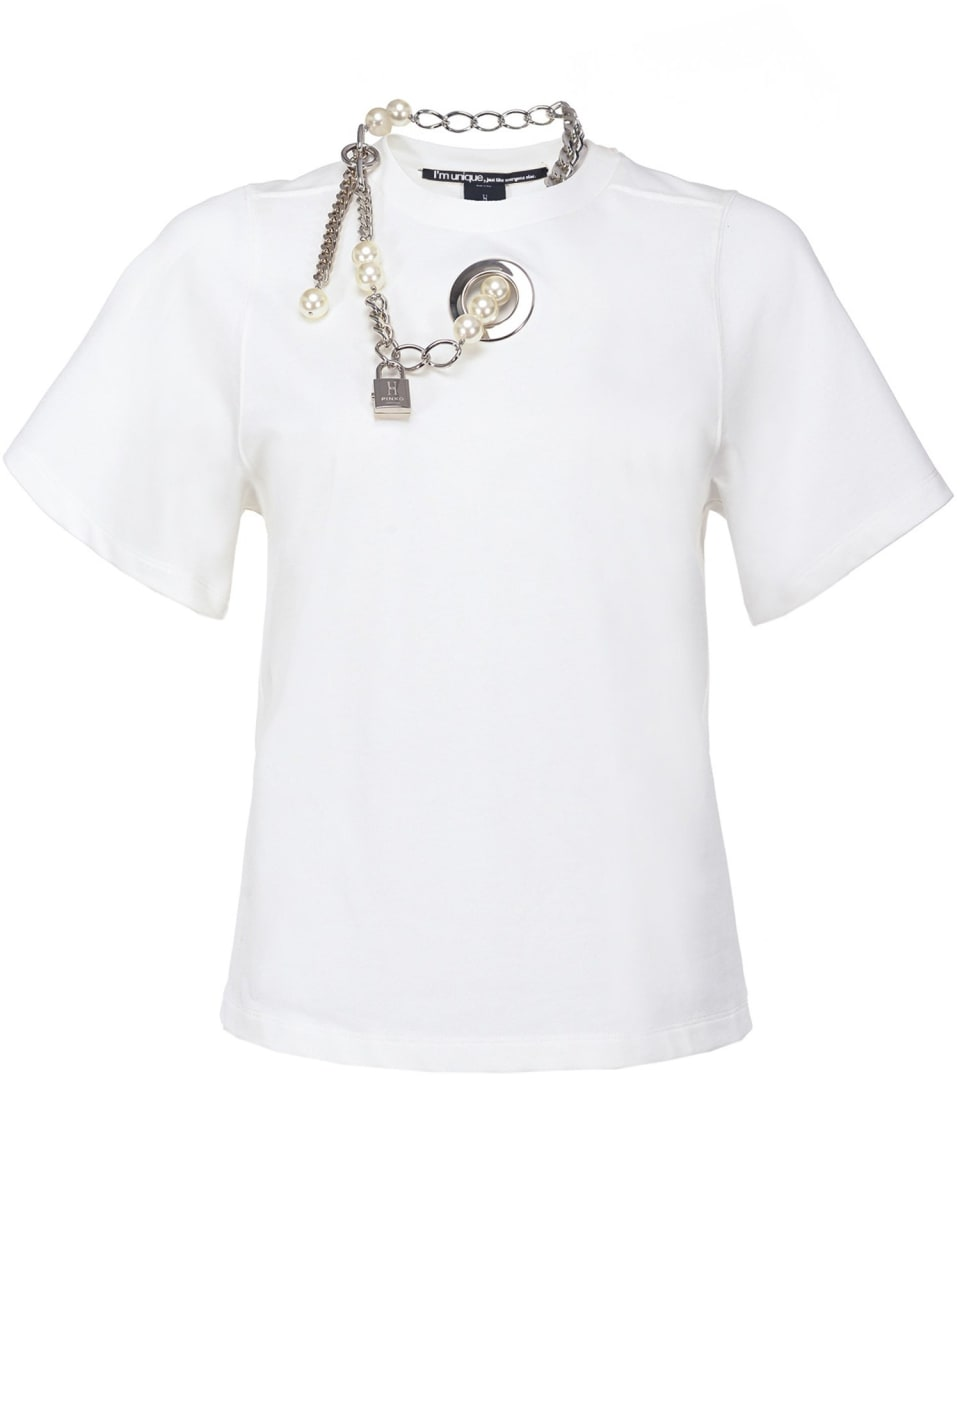 T-shirt with pearls